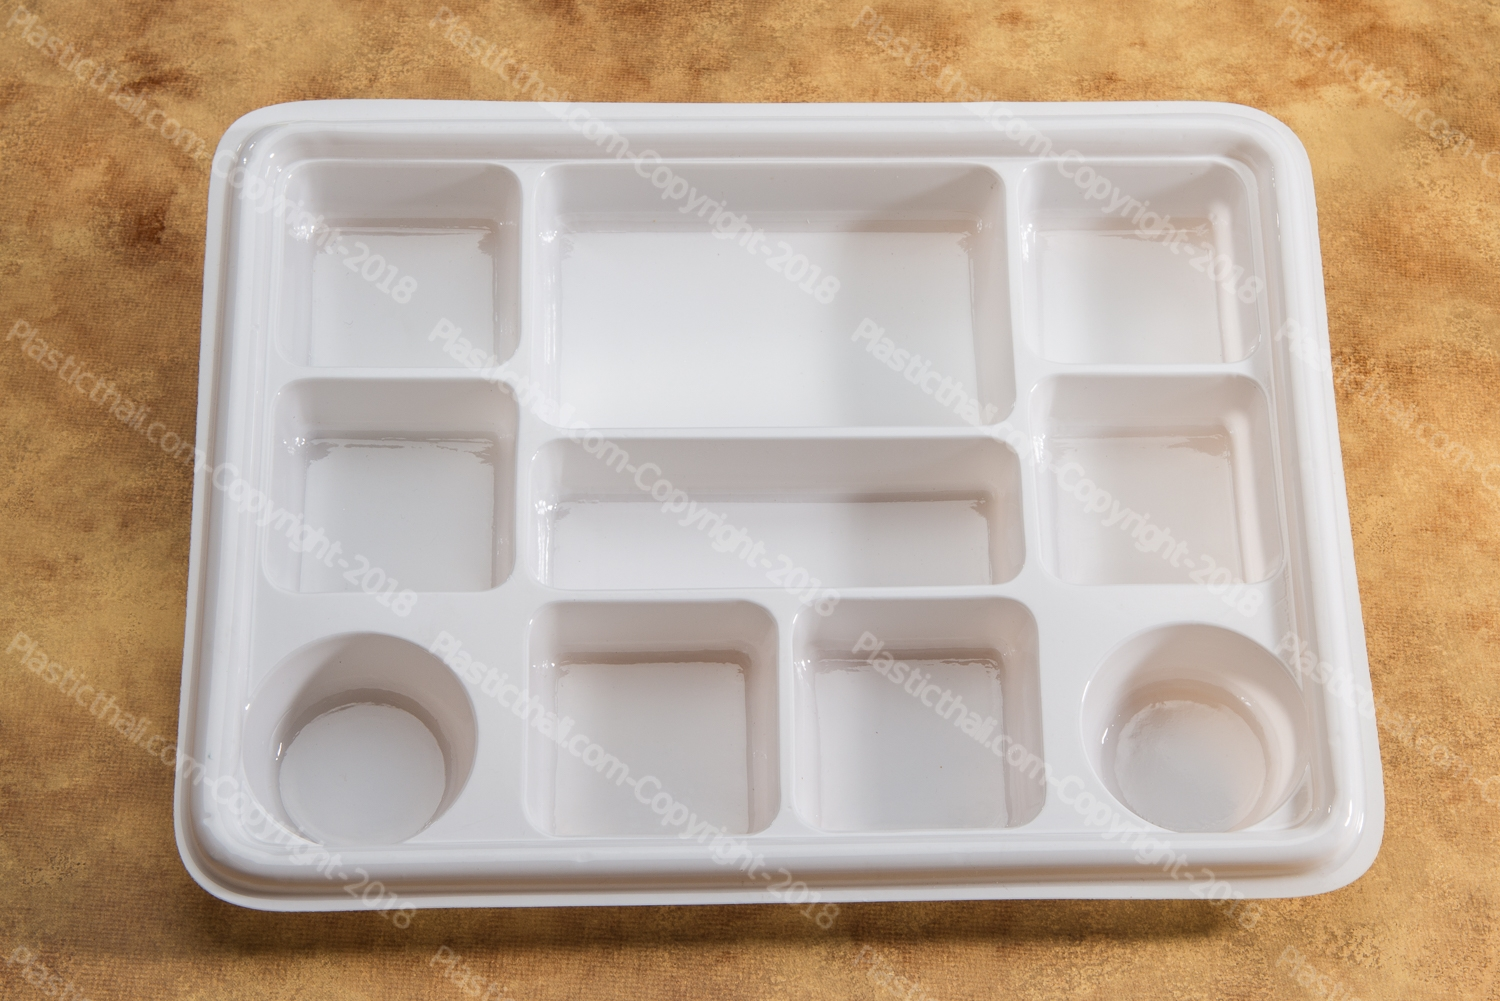 10 compartment disposable plastic plates 7